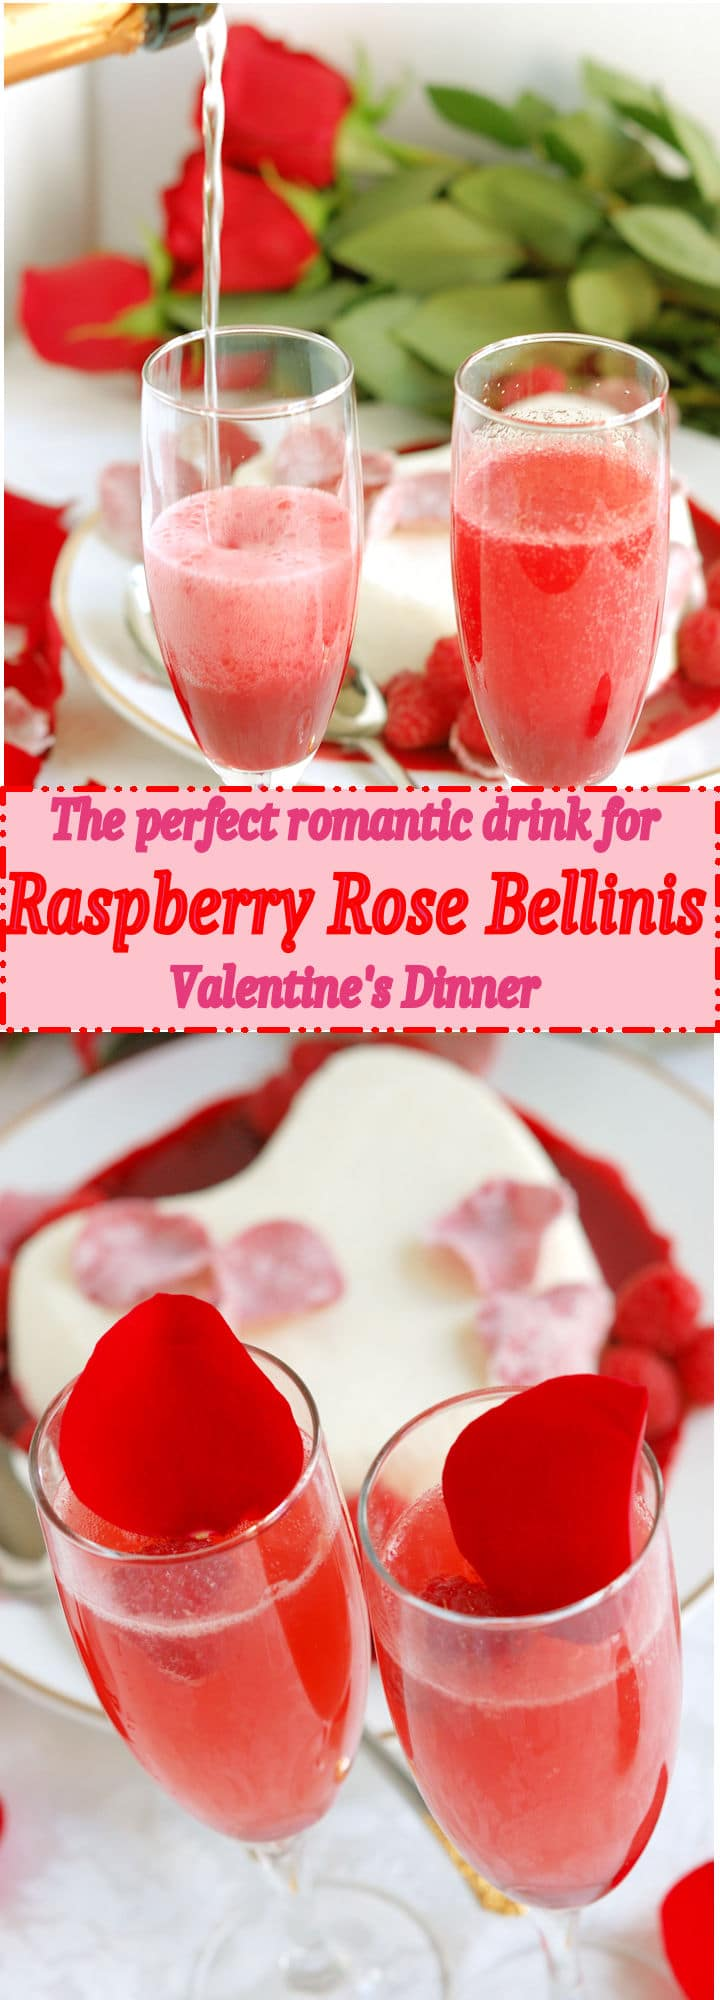 Share this romantic drink with your Valentine